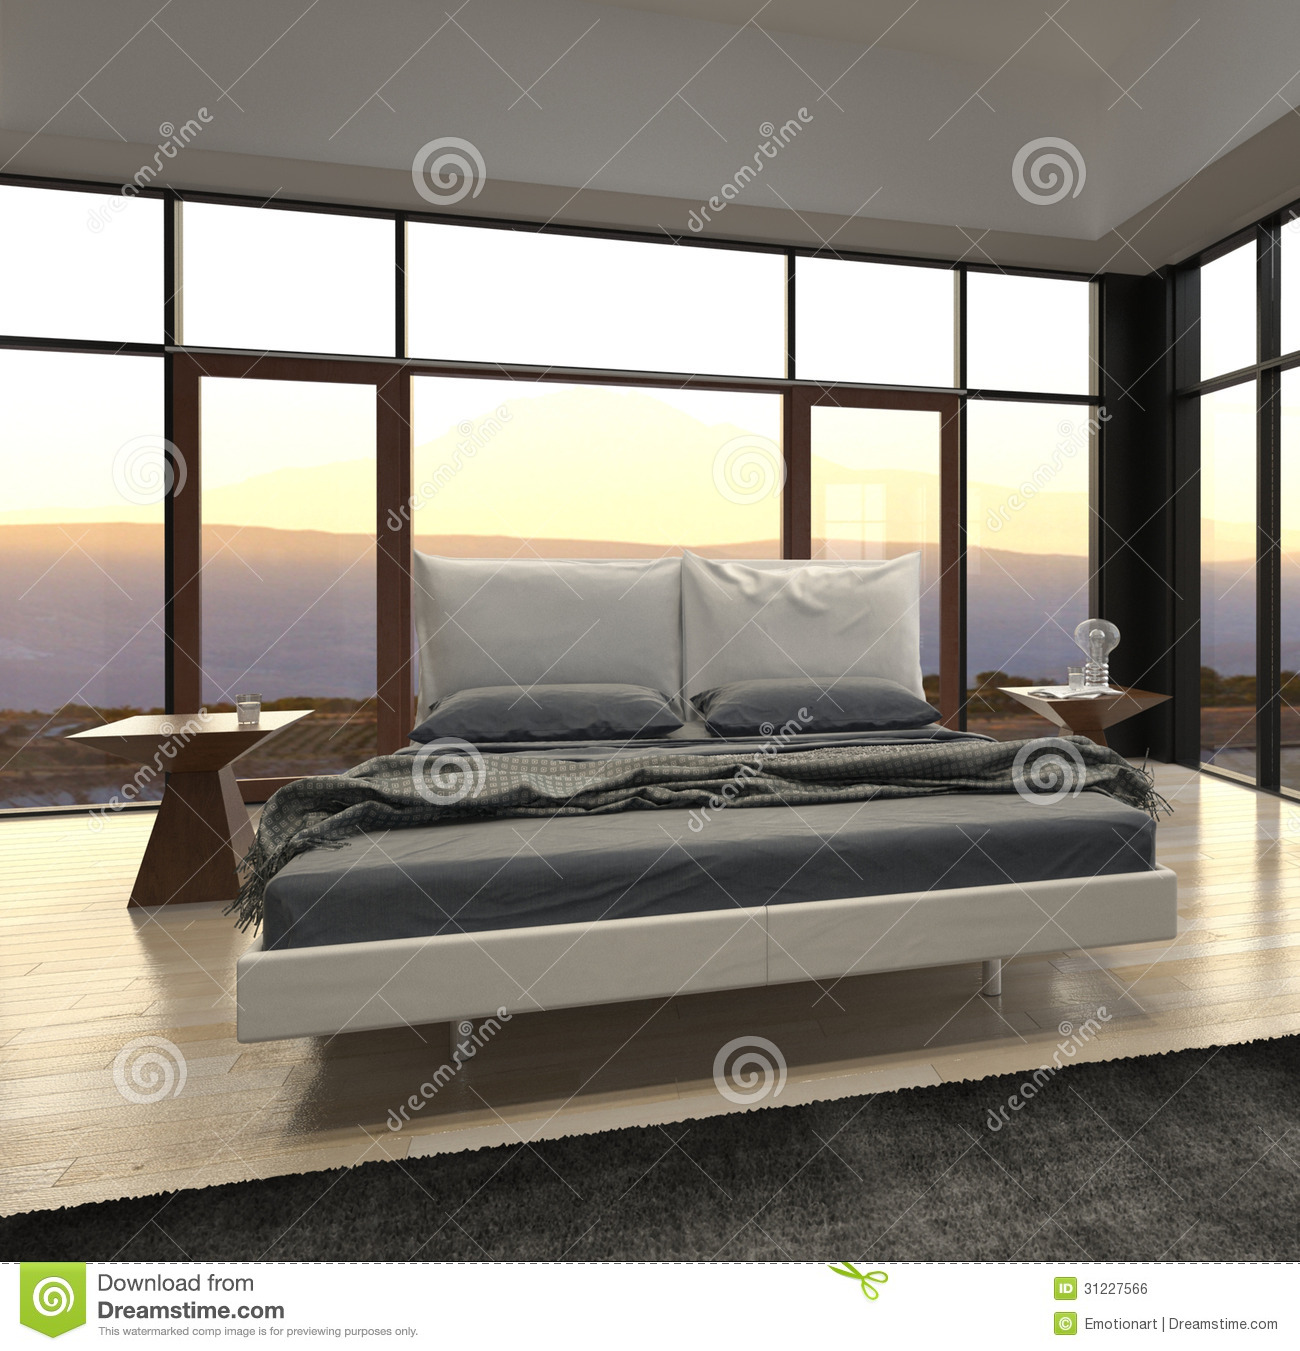 Modern design bedroom with landscape view royalty free stock image image 31227566 - Image bed room ...